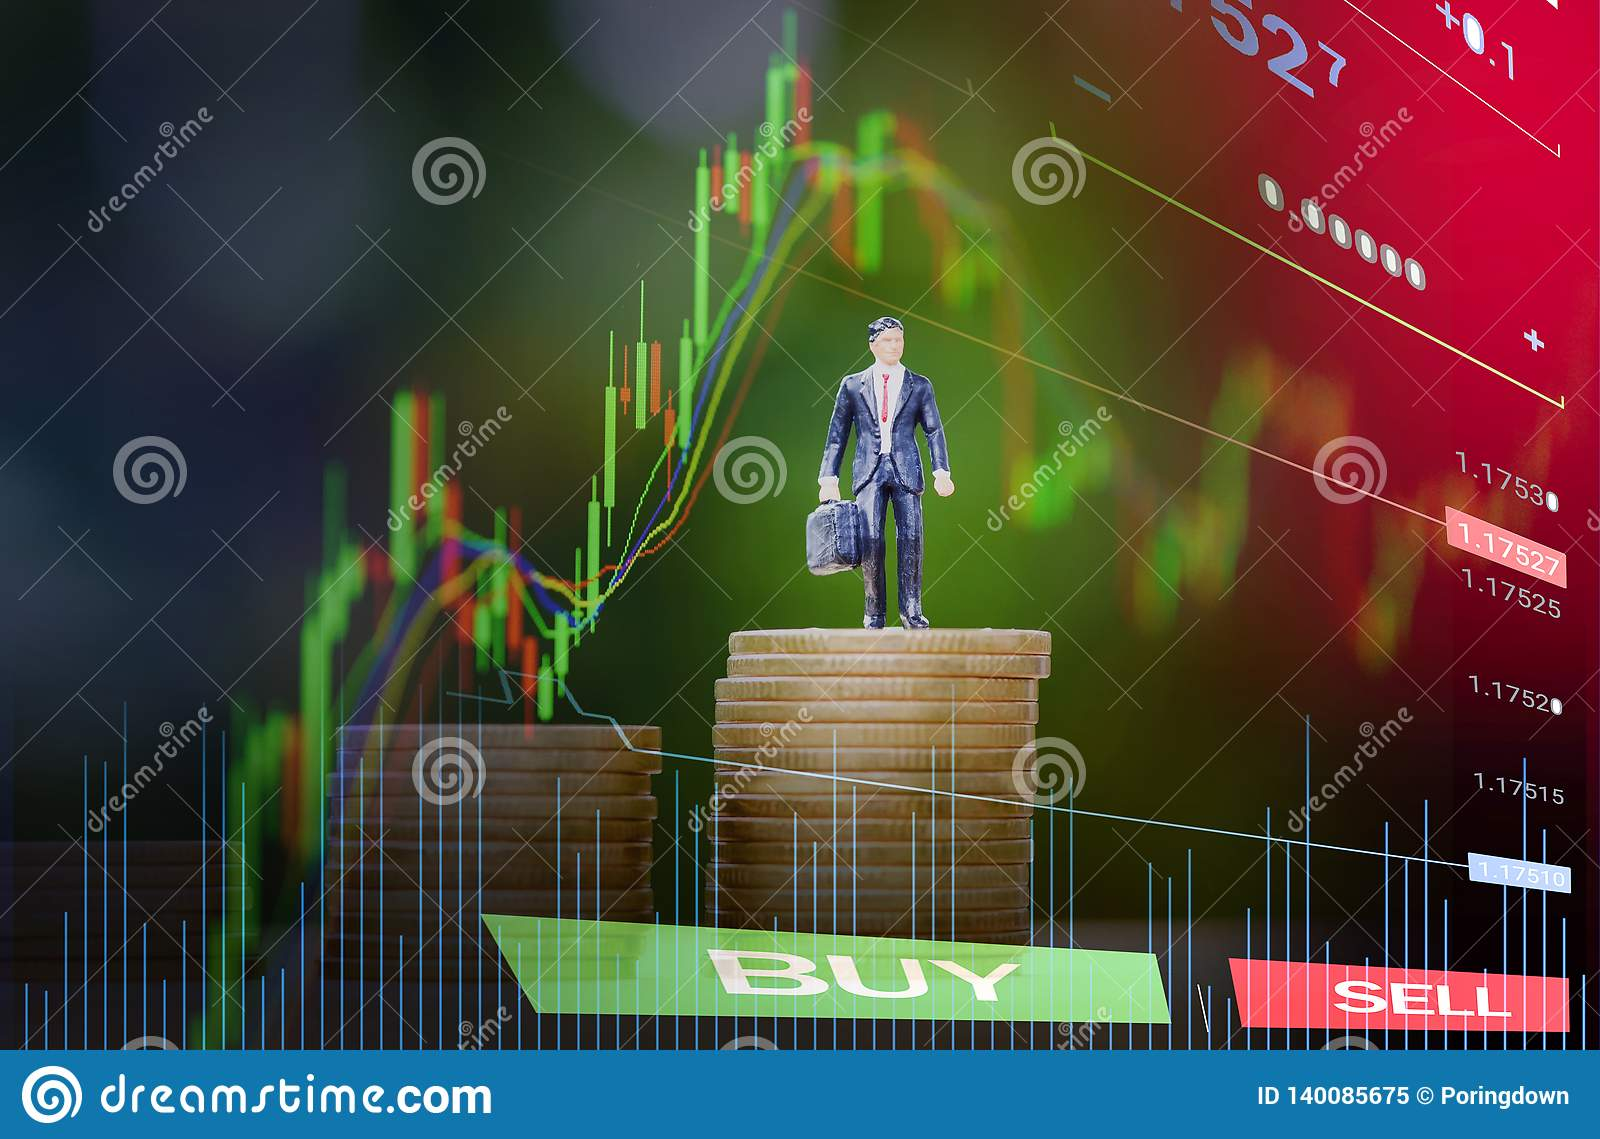 Gold coin step up success planning concept / business man standing on staircase coin money stack success